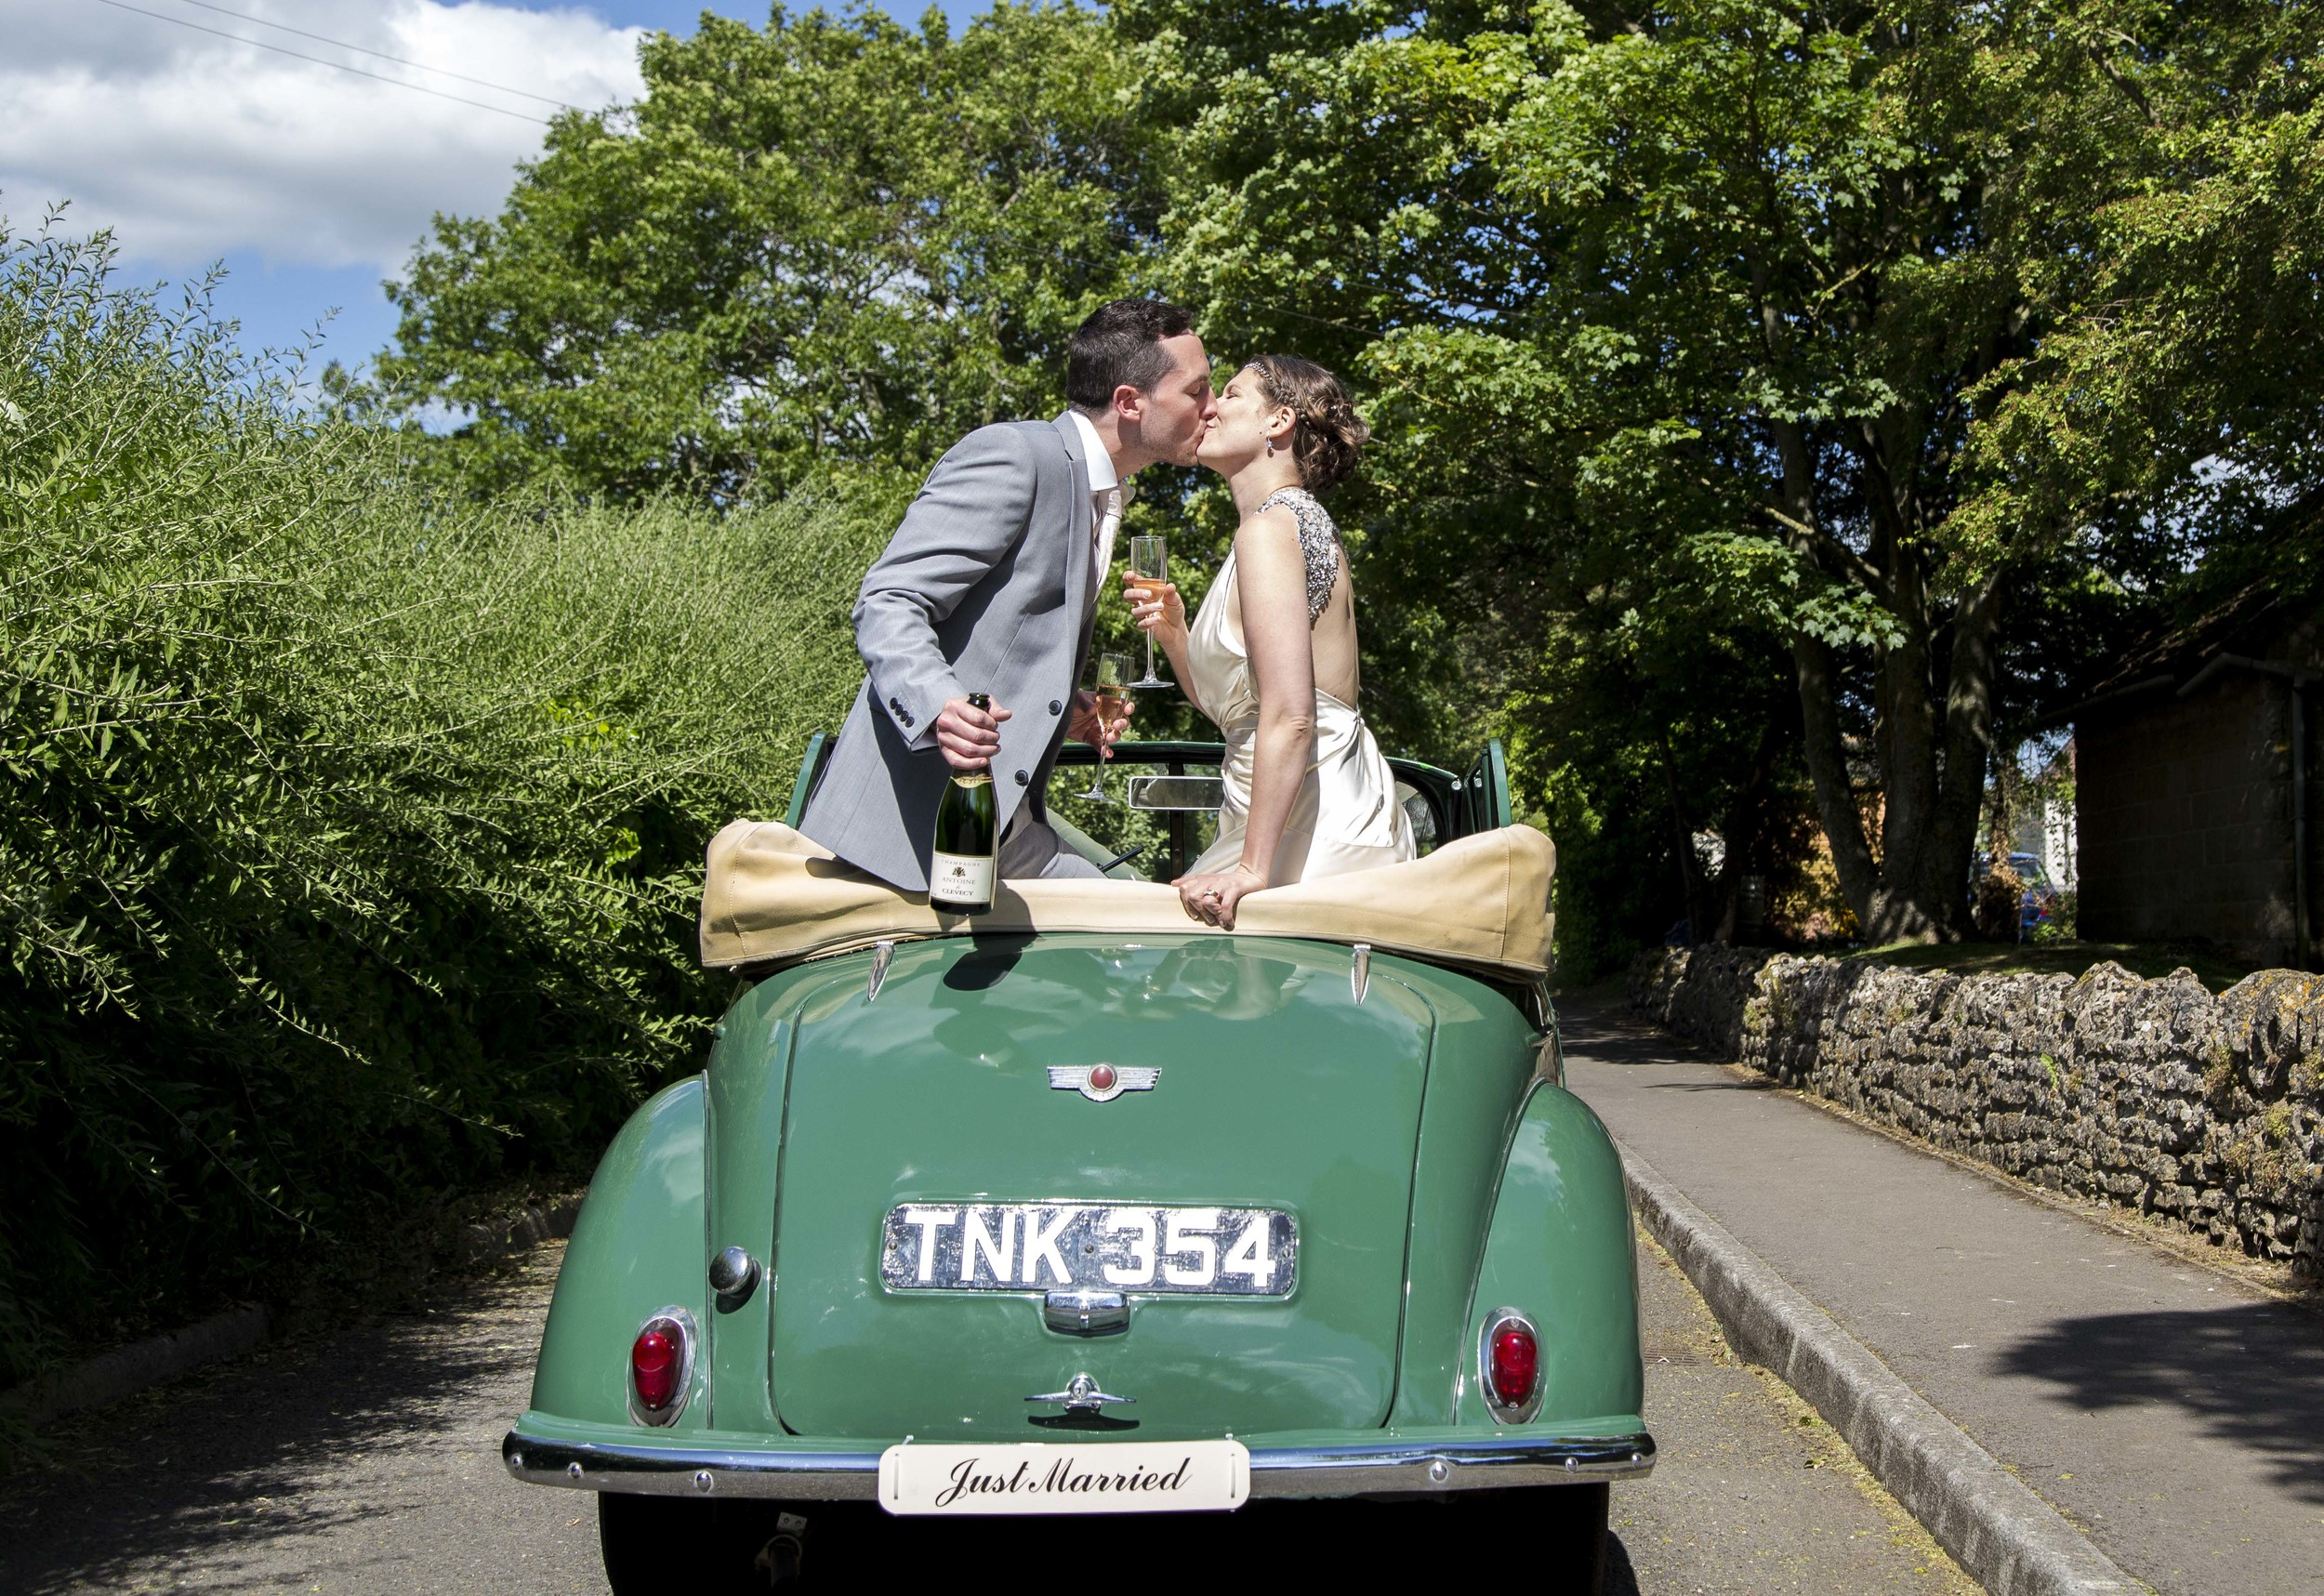 My best memory from this wedding on 6th June aside from the stunning vintage dress, cool Morris Minor, village hall reception decorated in rustic english themed charm and just an all round wonderful day for the lovely couple Jade & Will, had to be Jade's dad's warm hearted emotion at seeing his daughter get married. So much emotion evoked and I love nothing more than capturing this. Lovely memories from a beautiful day!